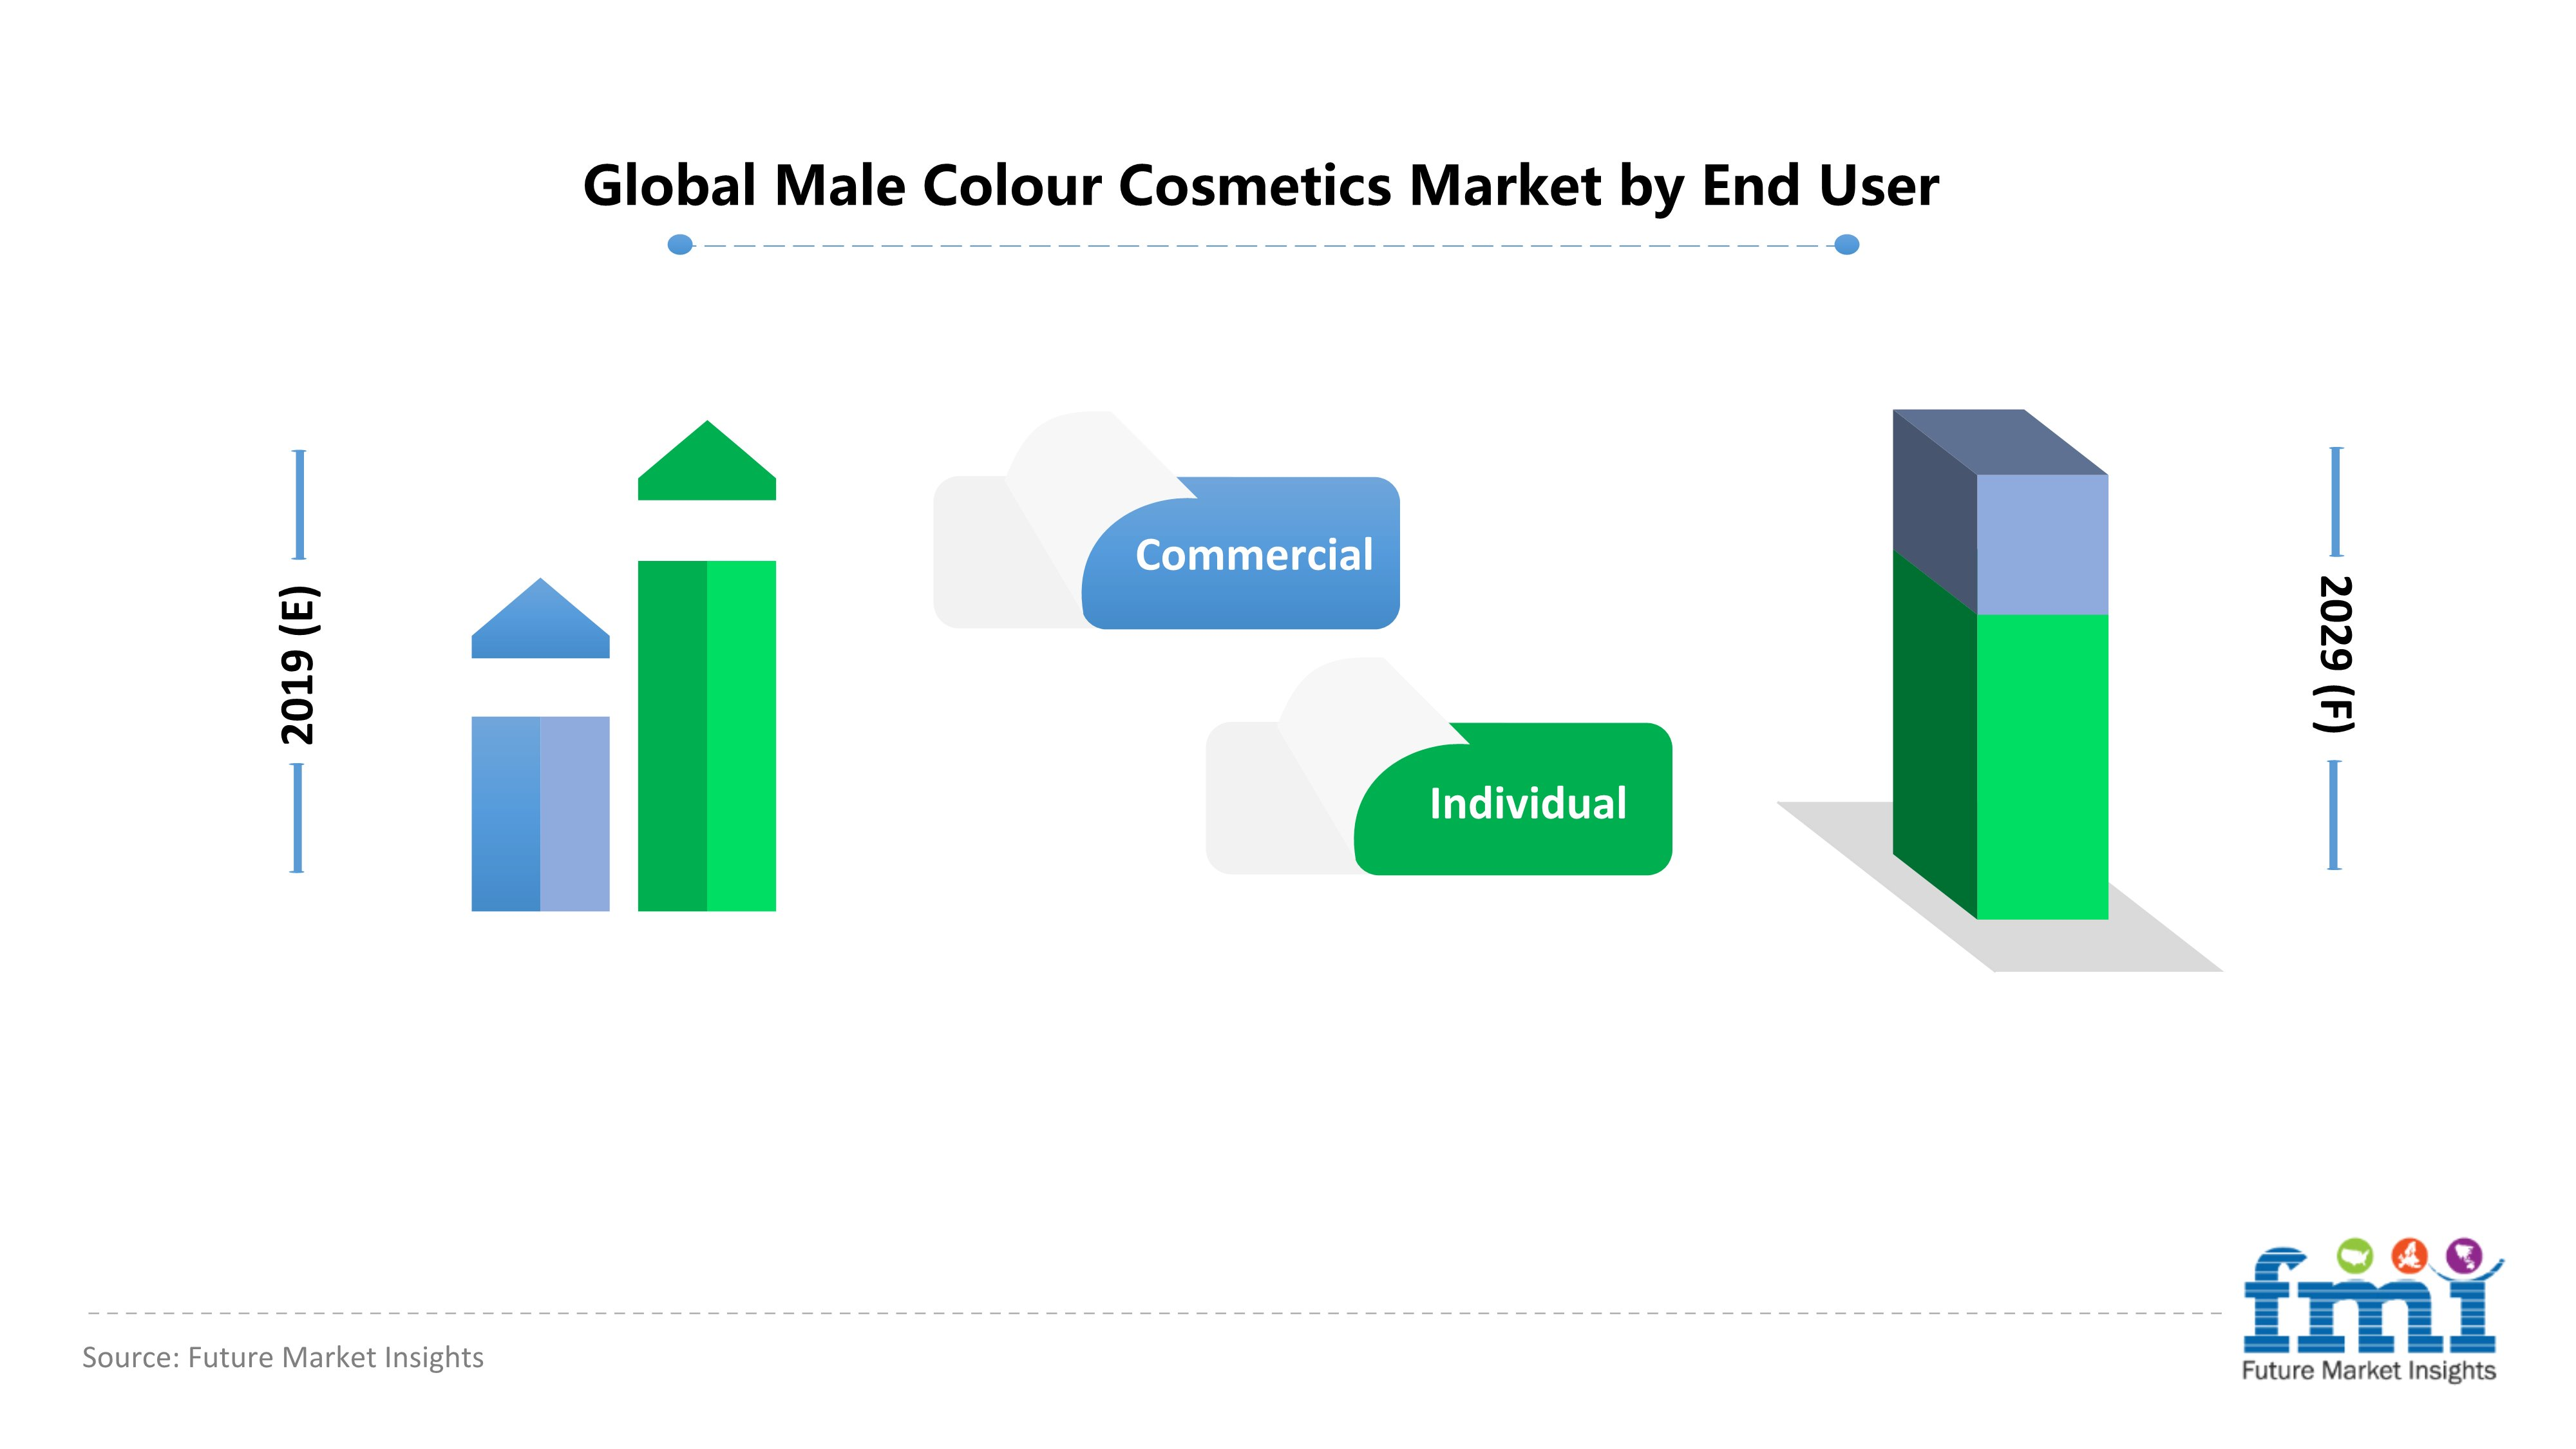 Global Male Colour Cosmetics Market by End User